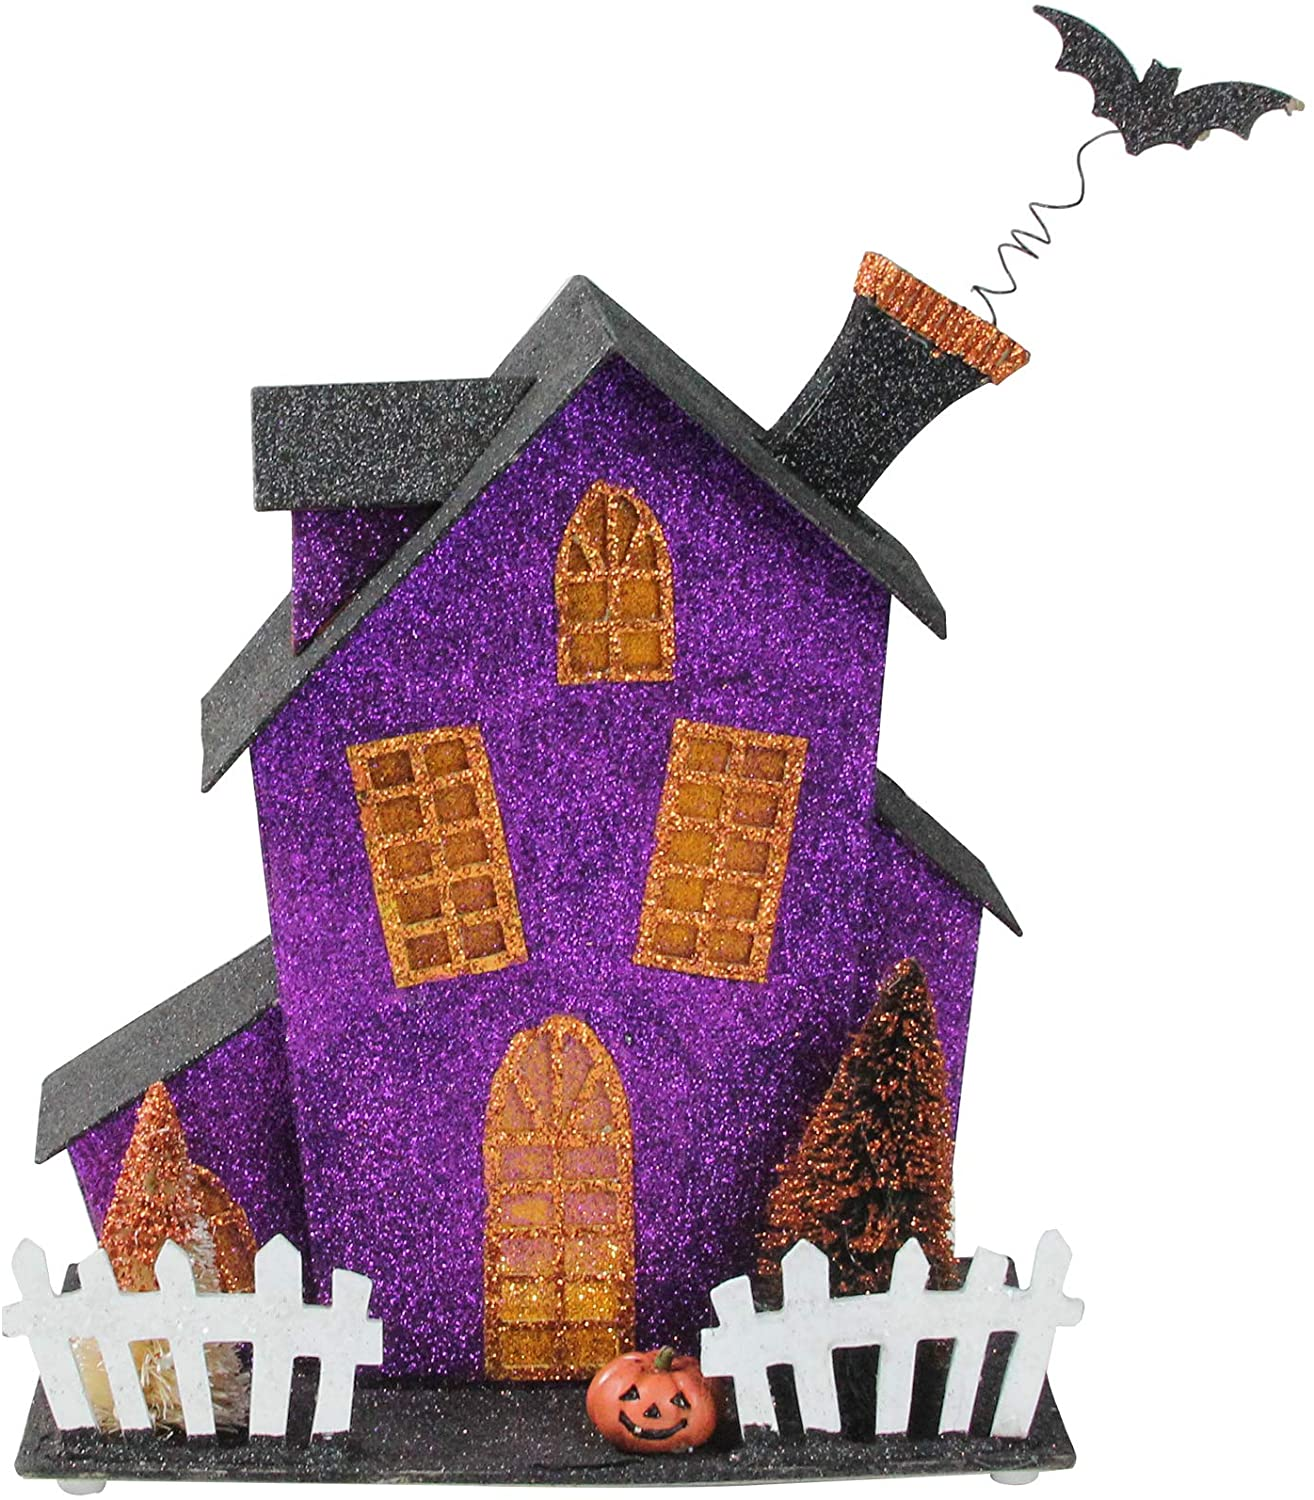 Midwest 11 Black and Purple Glitter Drenched Lighted Haunted Fun House Halloween Decor